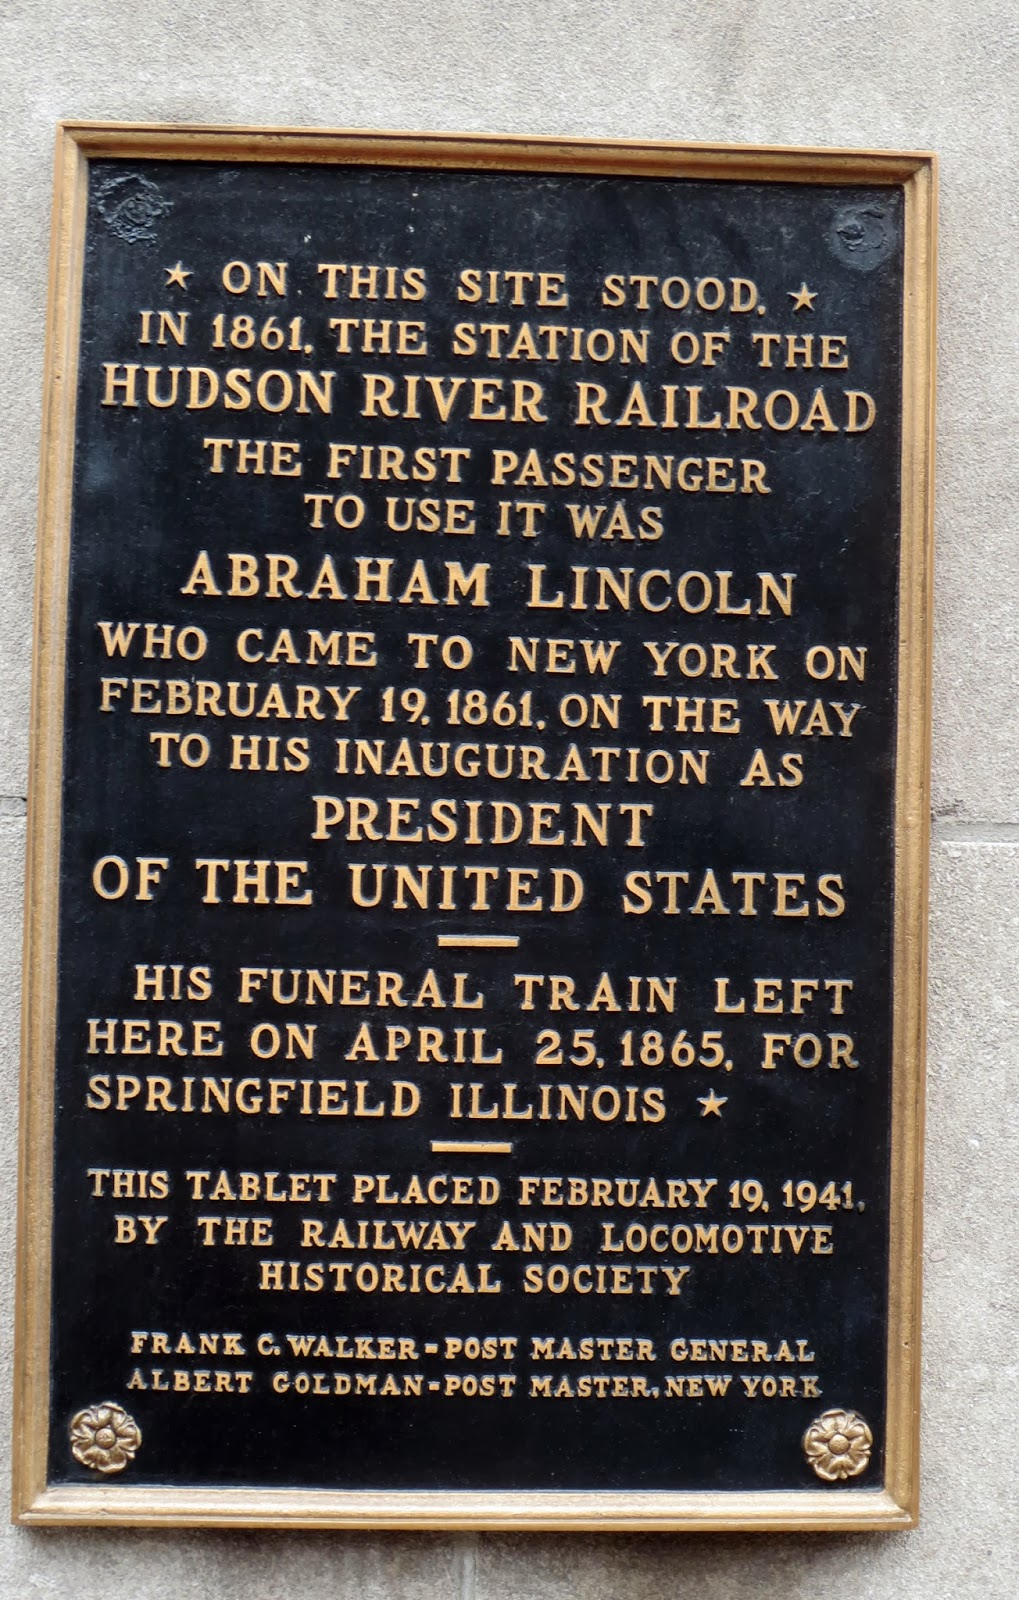 Before this building on the same place there was a railway station owned by the hudson river railroad the first passenger to use the station was abraham